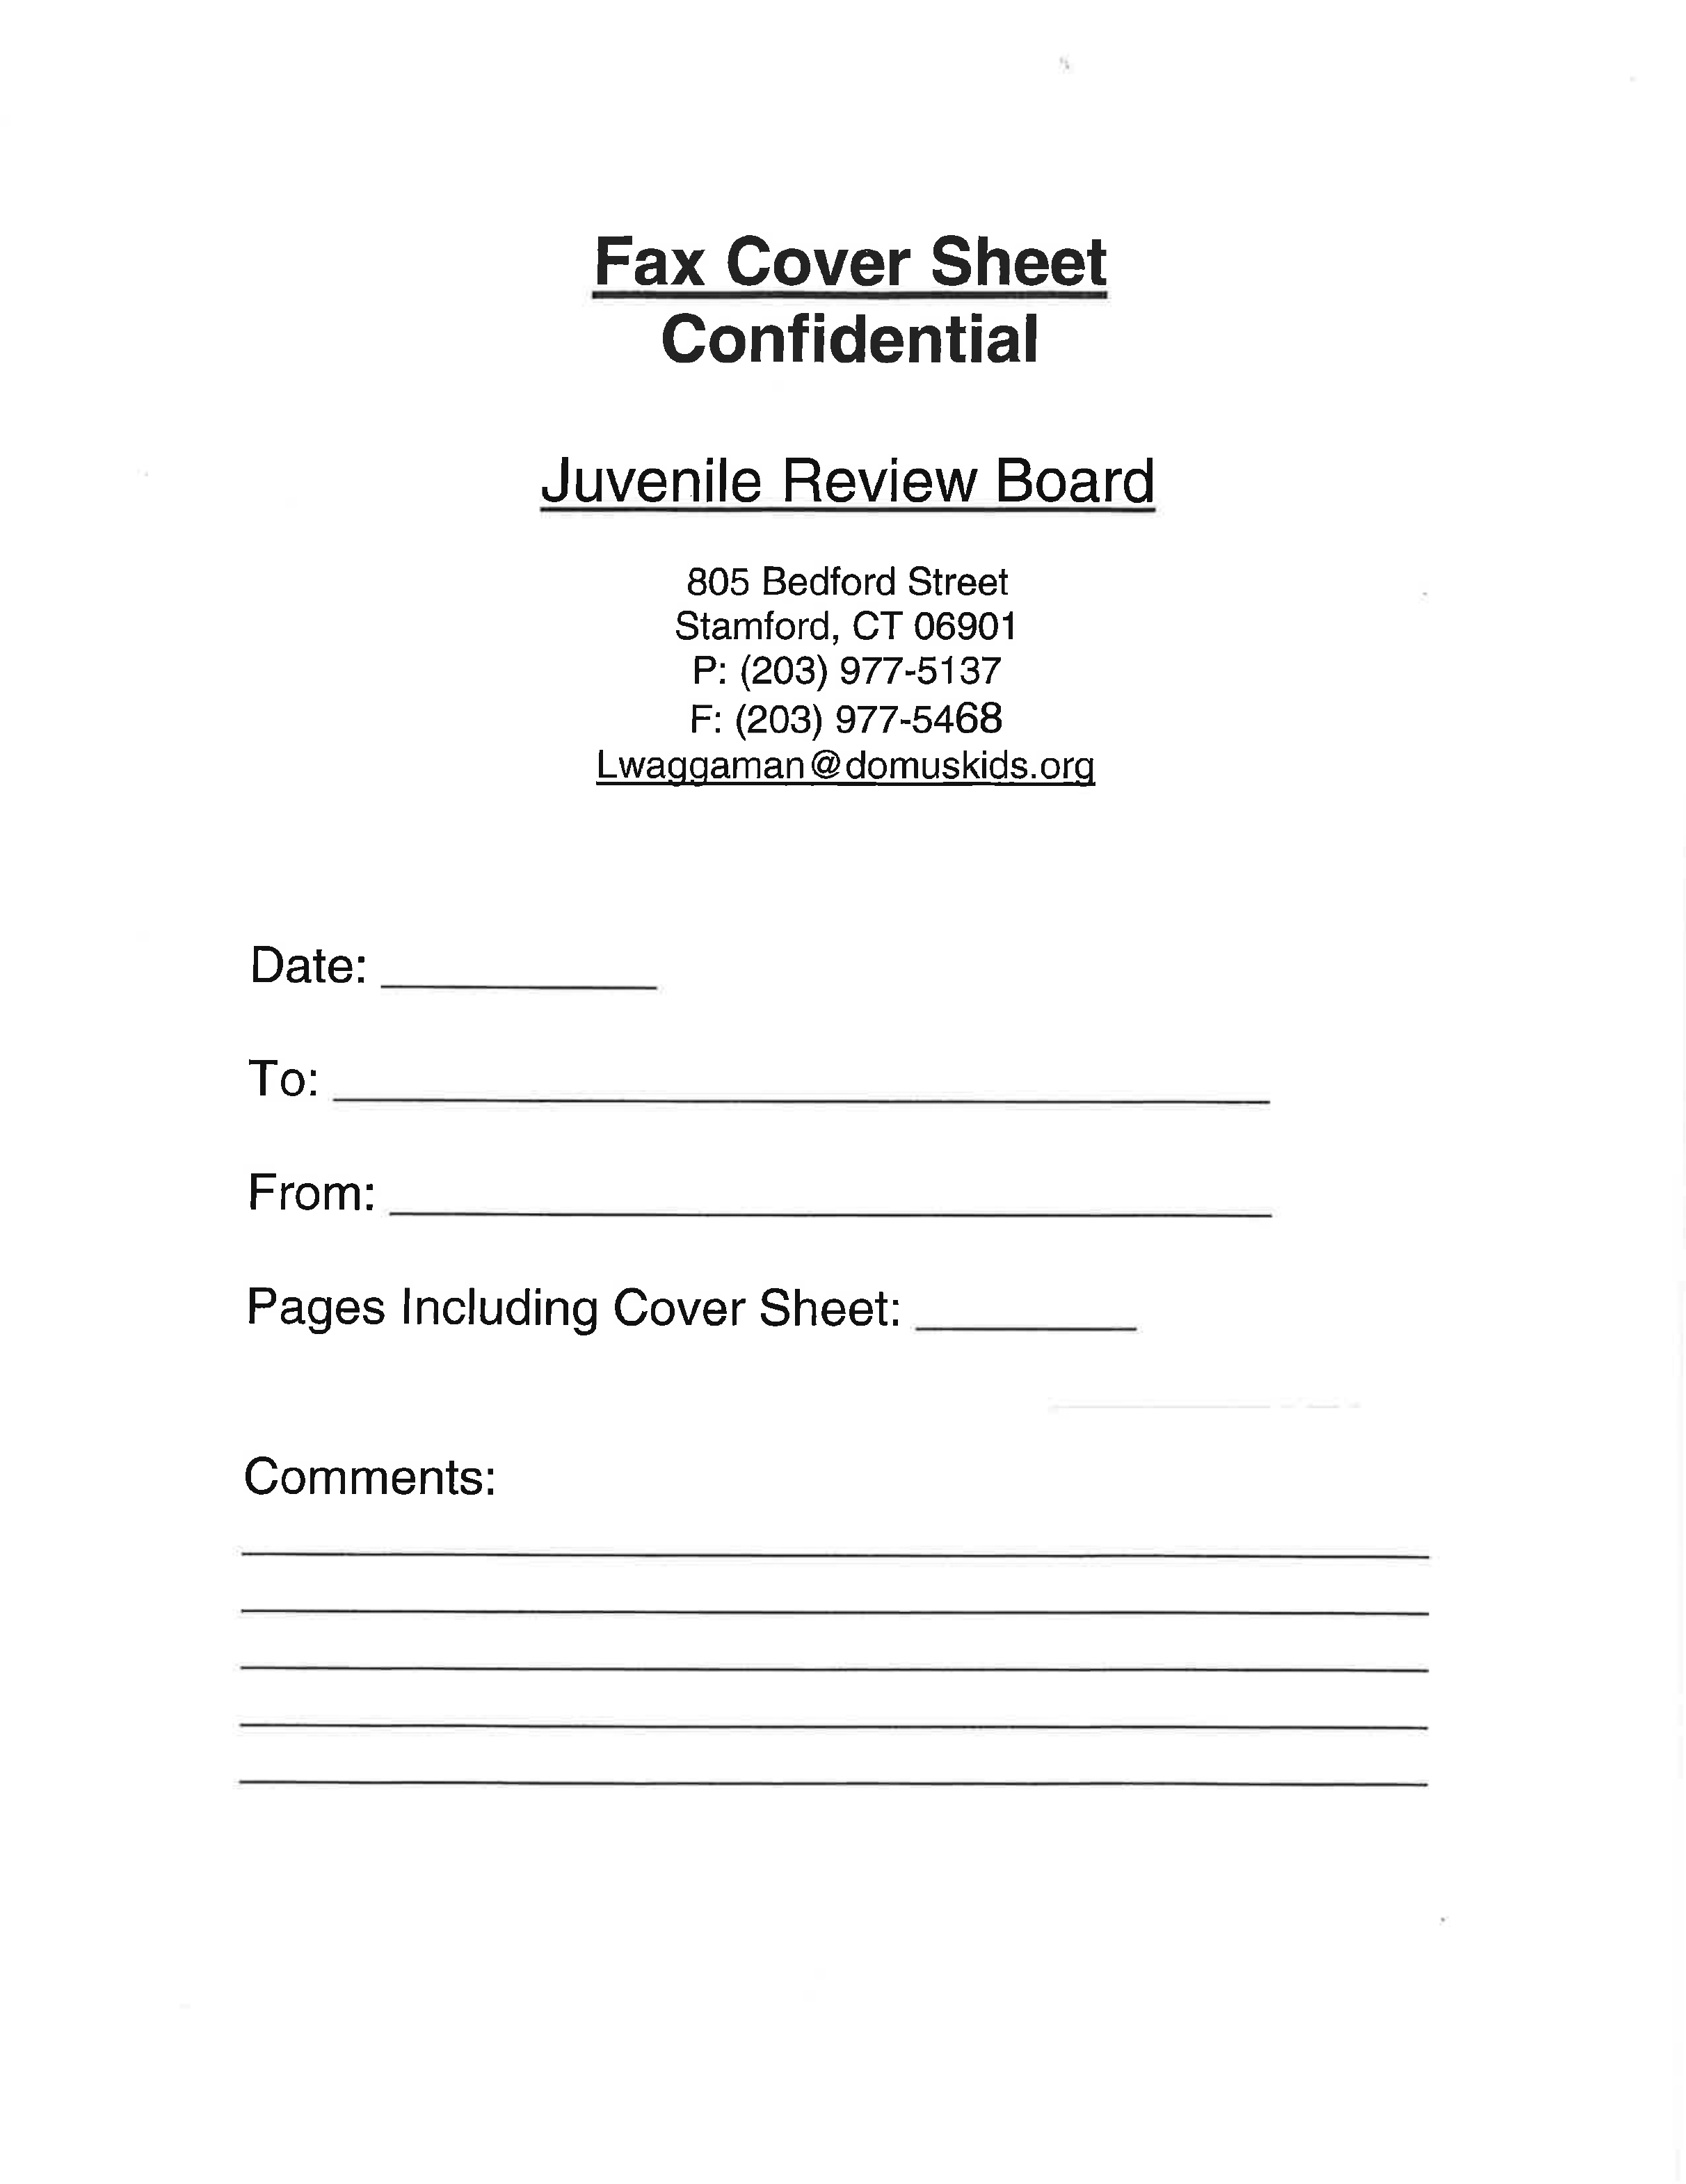 confidential fax cover sheet printable fax cover sheet  fax cover sheet confidential